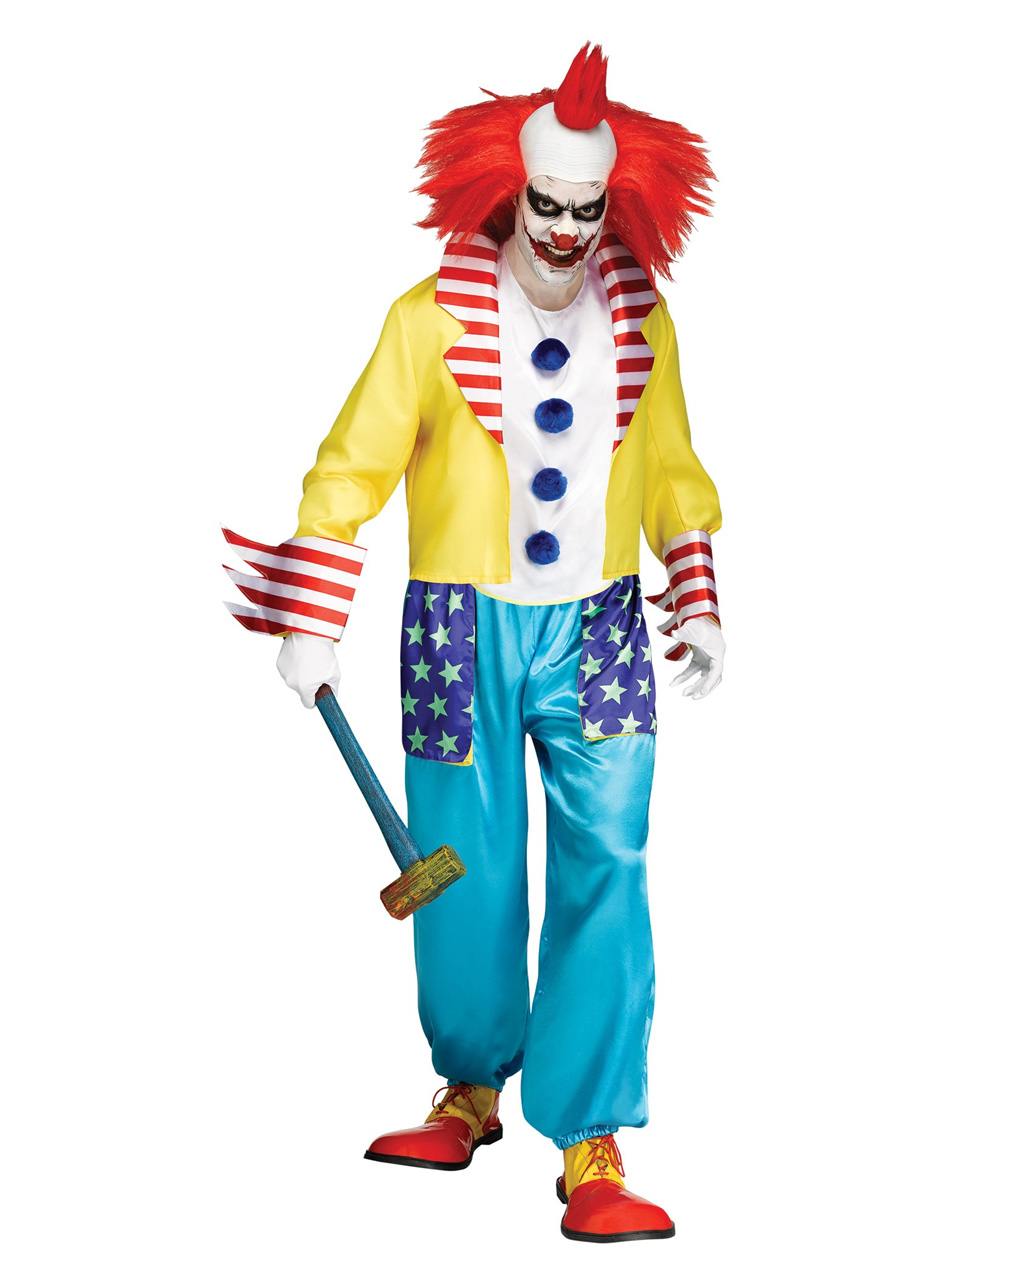 wicked clown halloween costume for horror parties | horror-shop